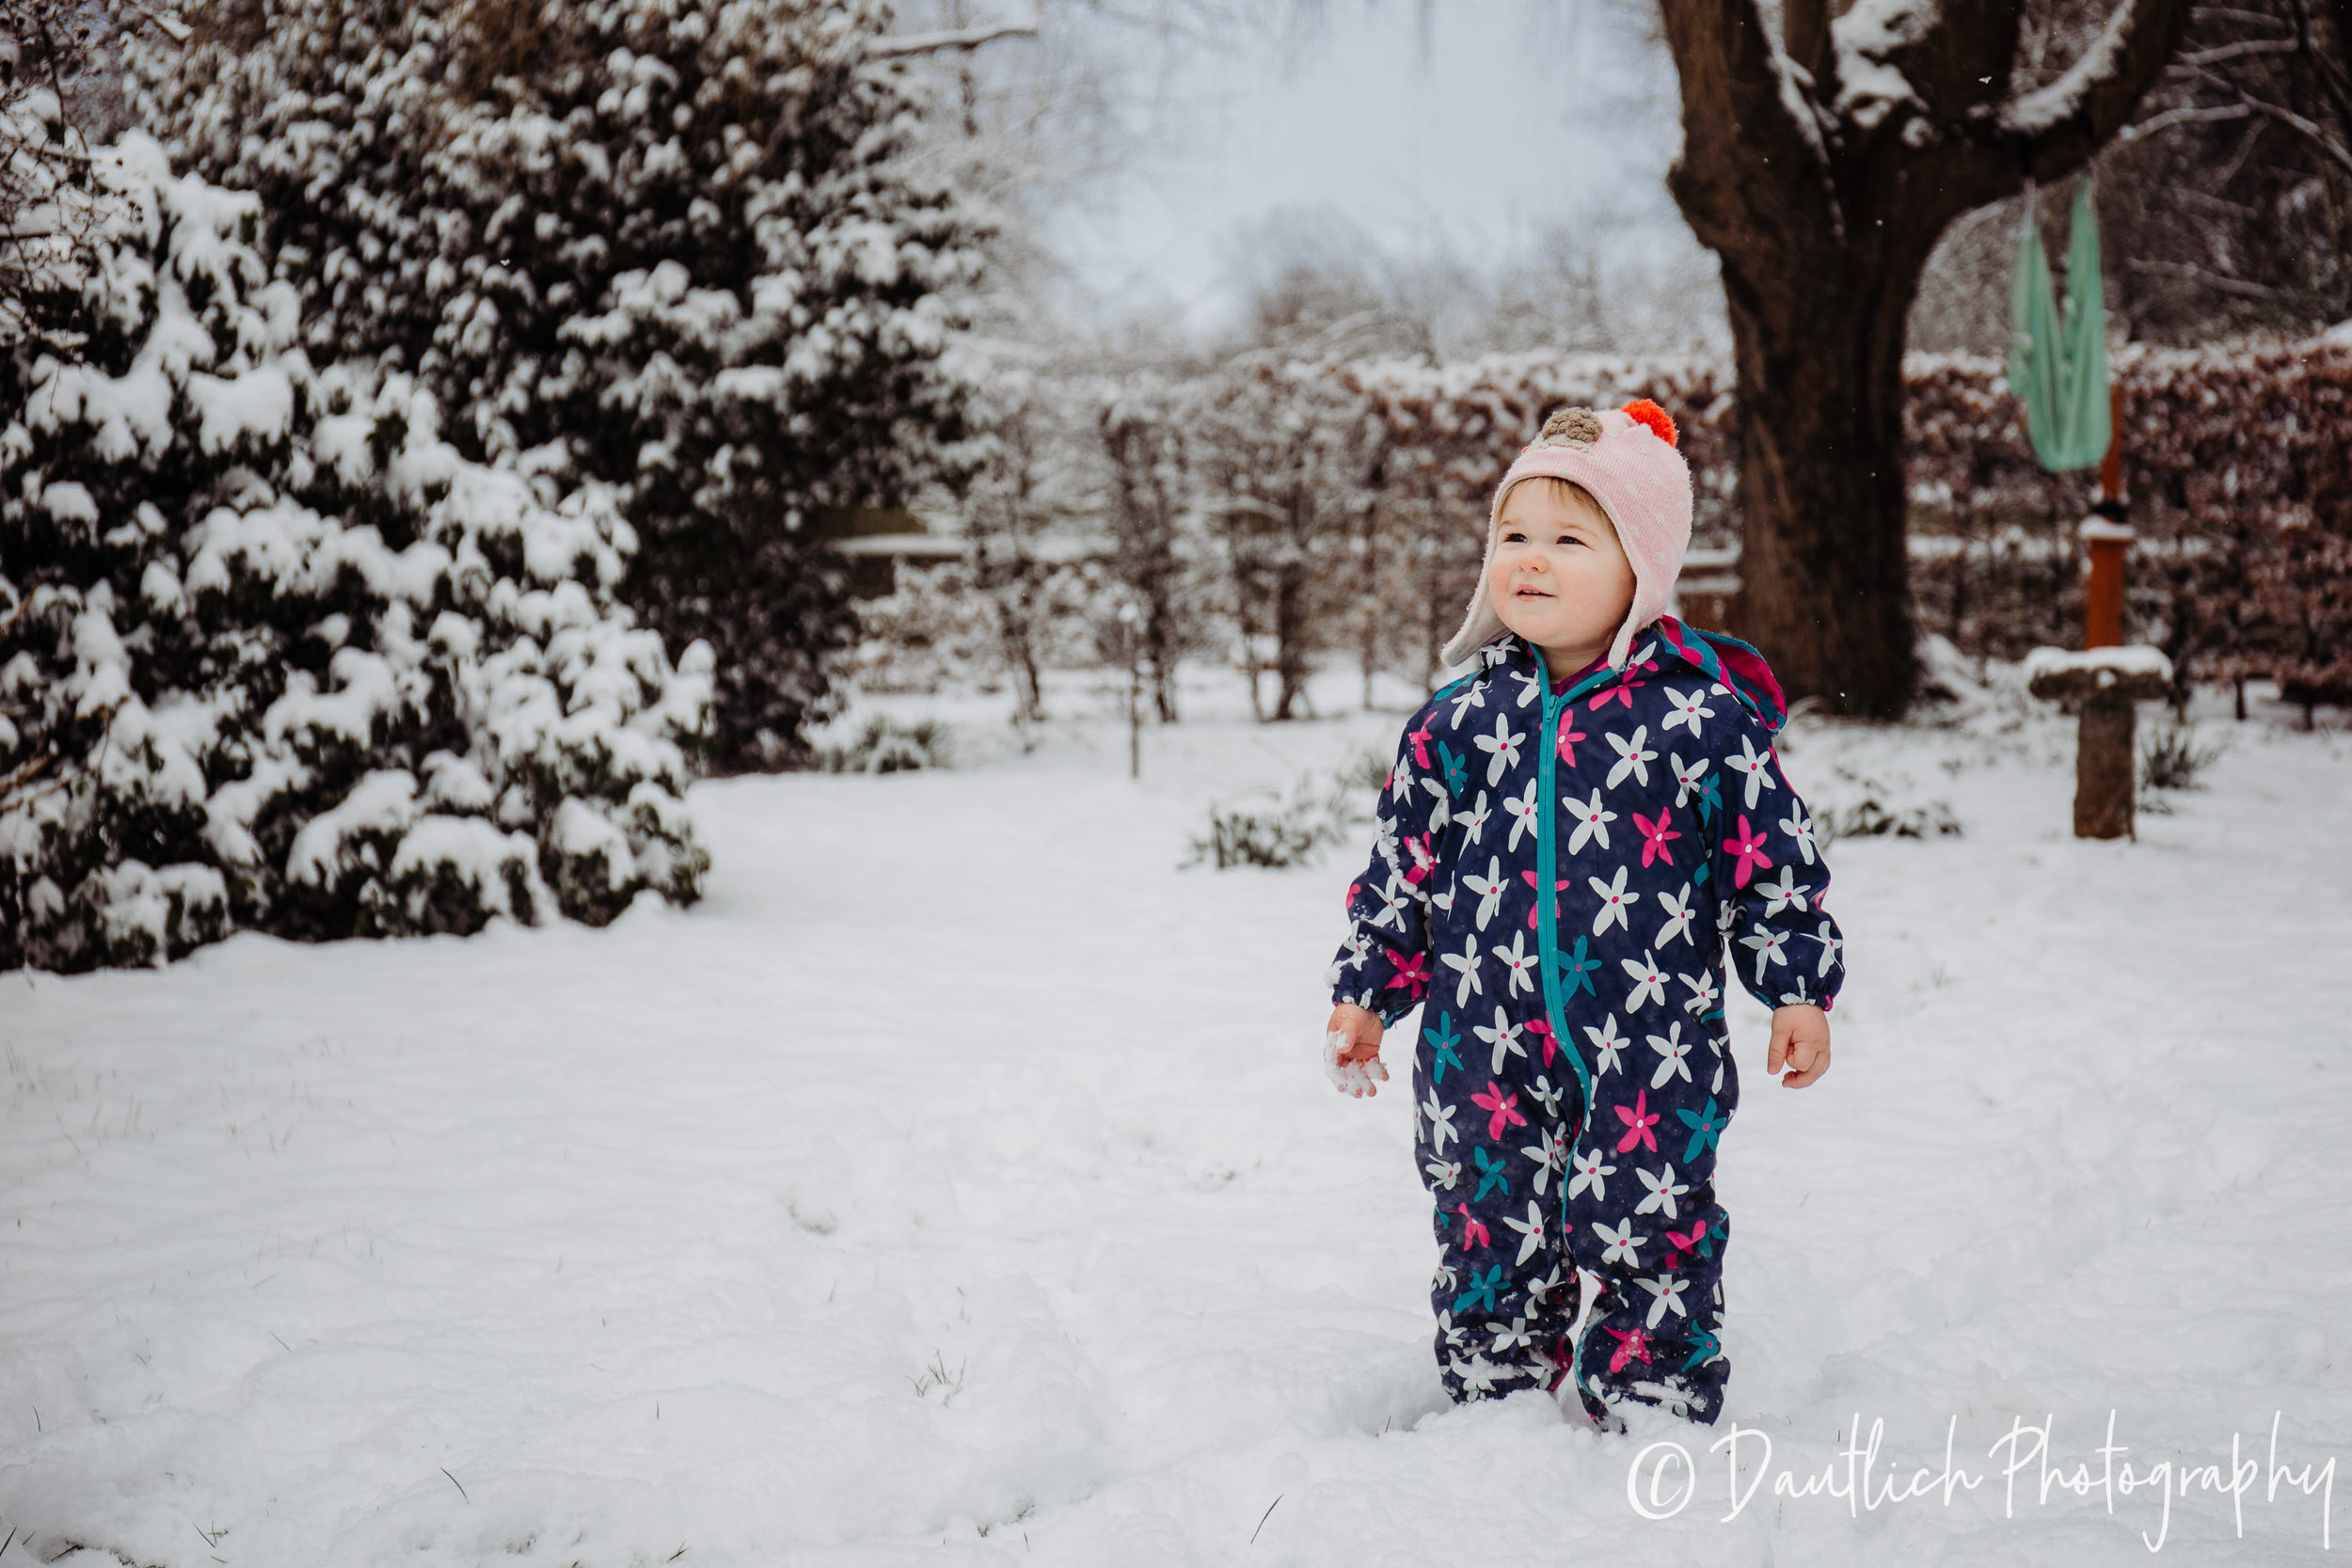 2.27.18_dautlich_photography_Hazel_snow_day-3.jpg